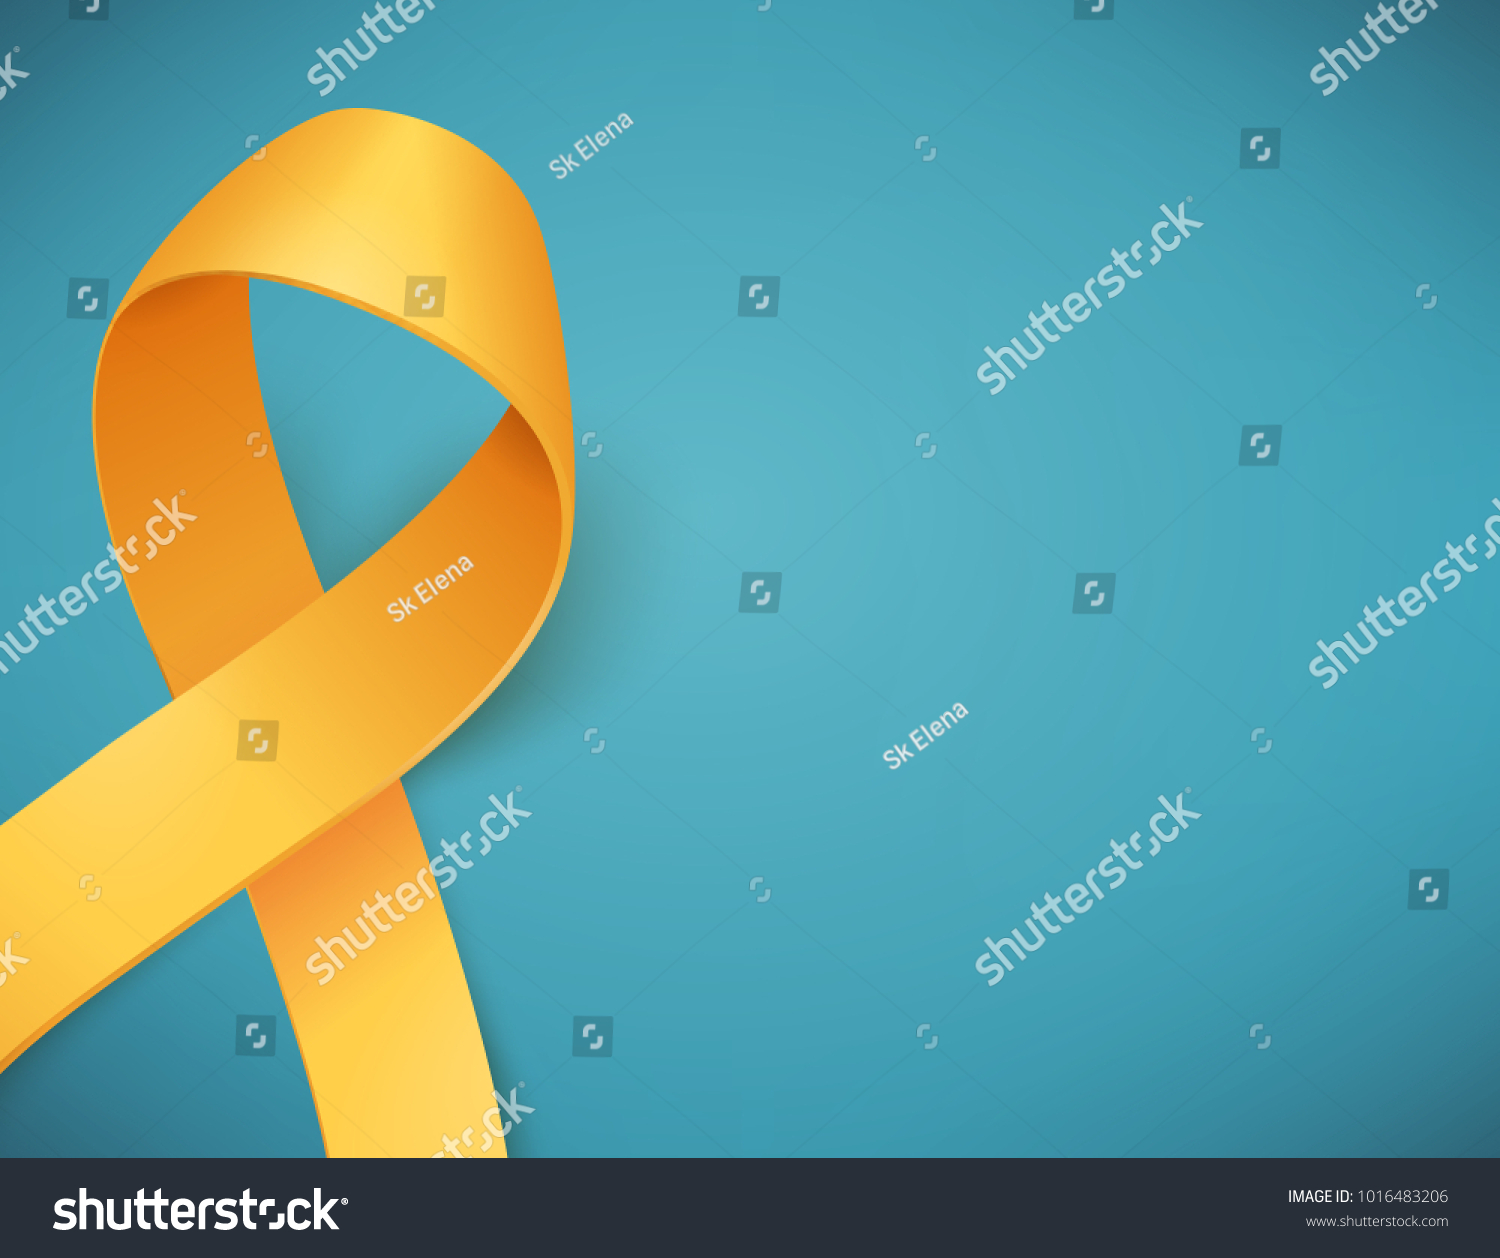 Background childhood cancer awareness day symbol stock vector background for childhood cancer awareness day with symbol realistic gold ribbon vector illustration buycottarizona Images